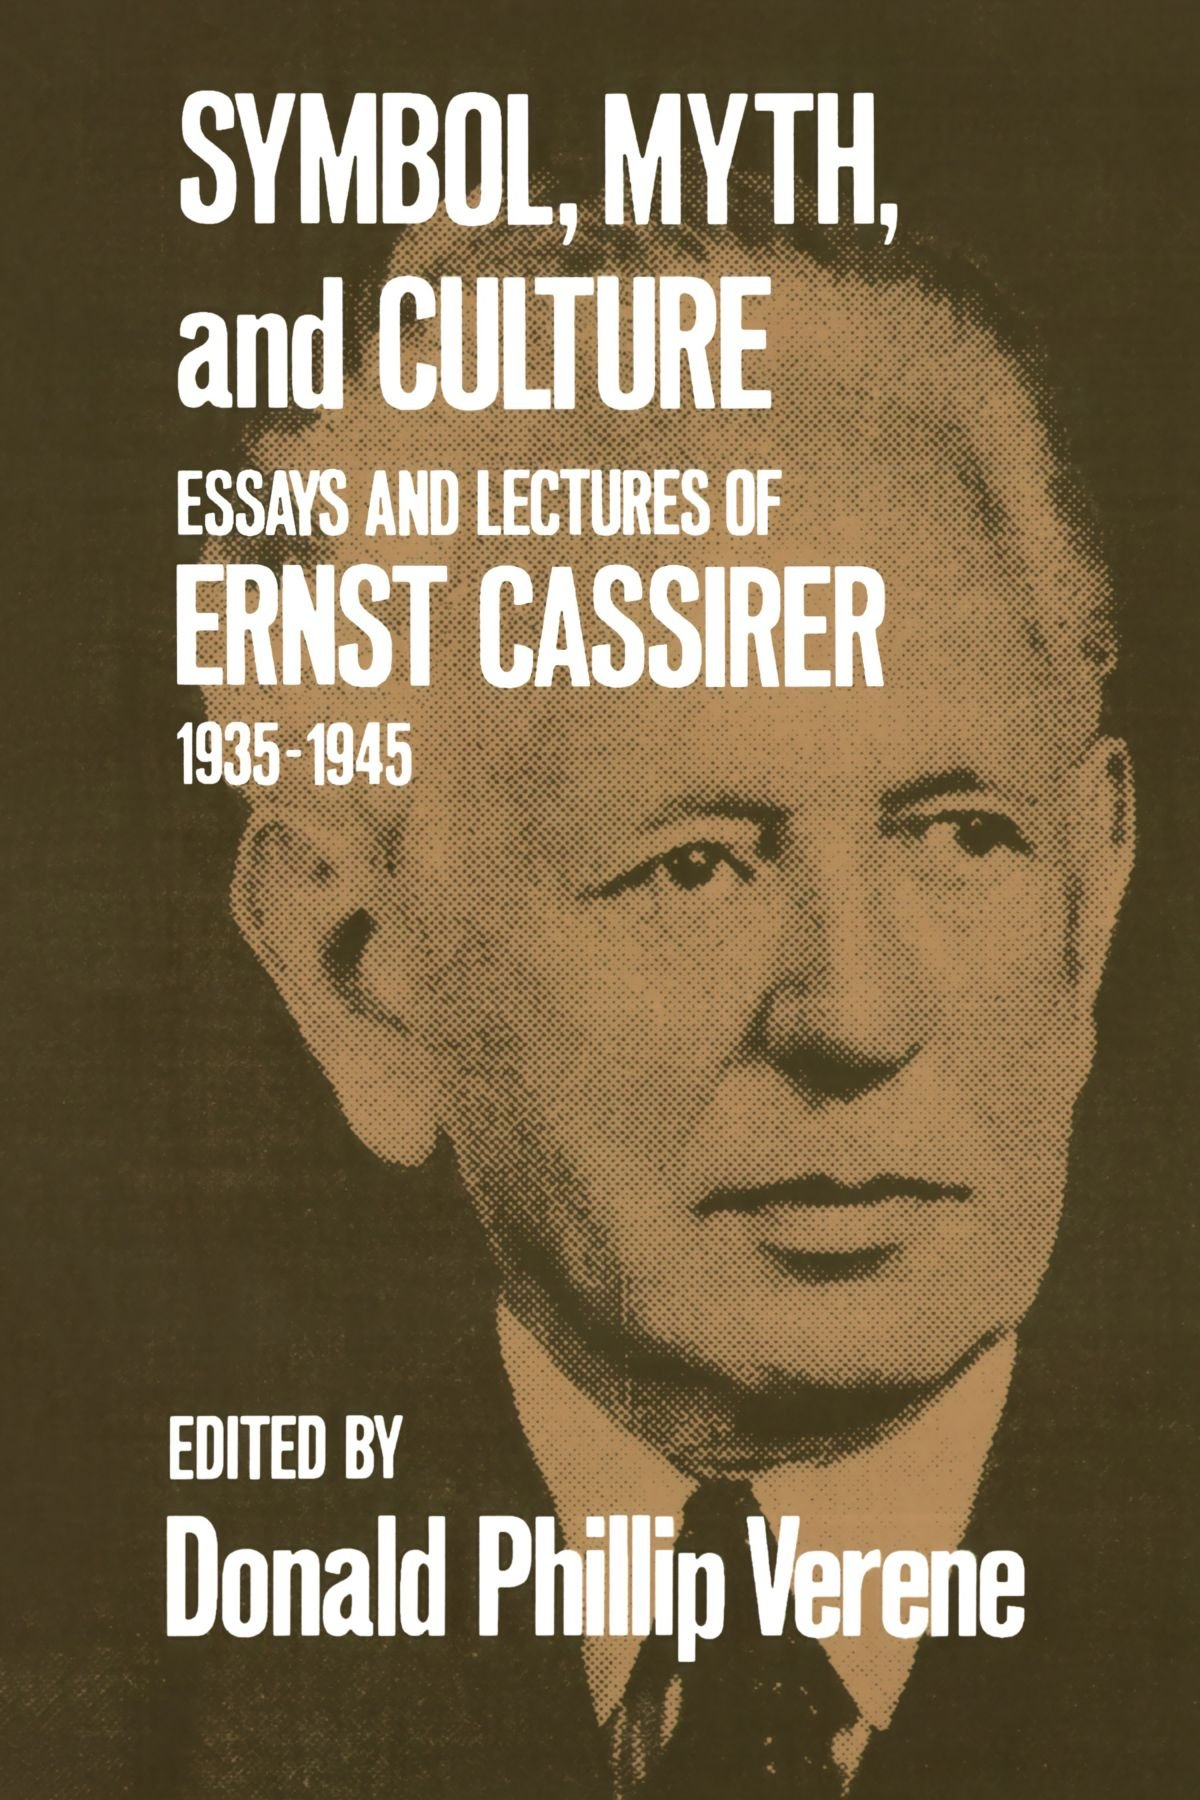 symbol myth and culture essays and lectures of ernst cassirer symbol myth and culture essays and lectures of ernst cassirer 1935 1945 ernst cassirer donald phillip verene 9780300026665 com books